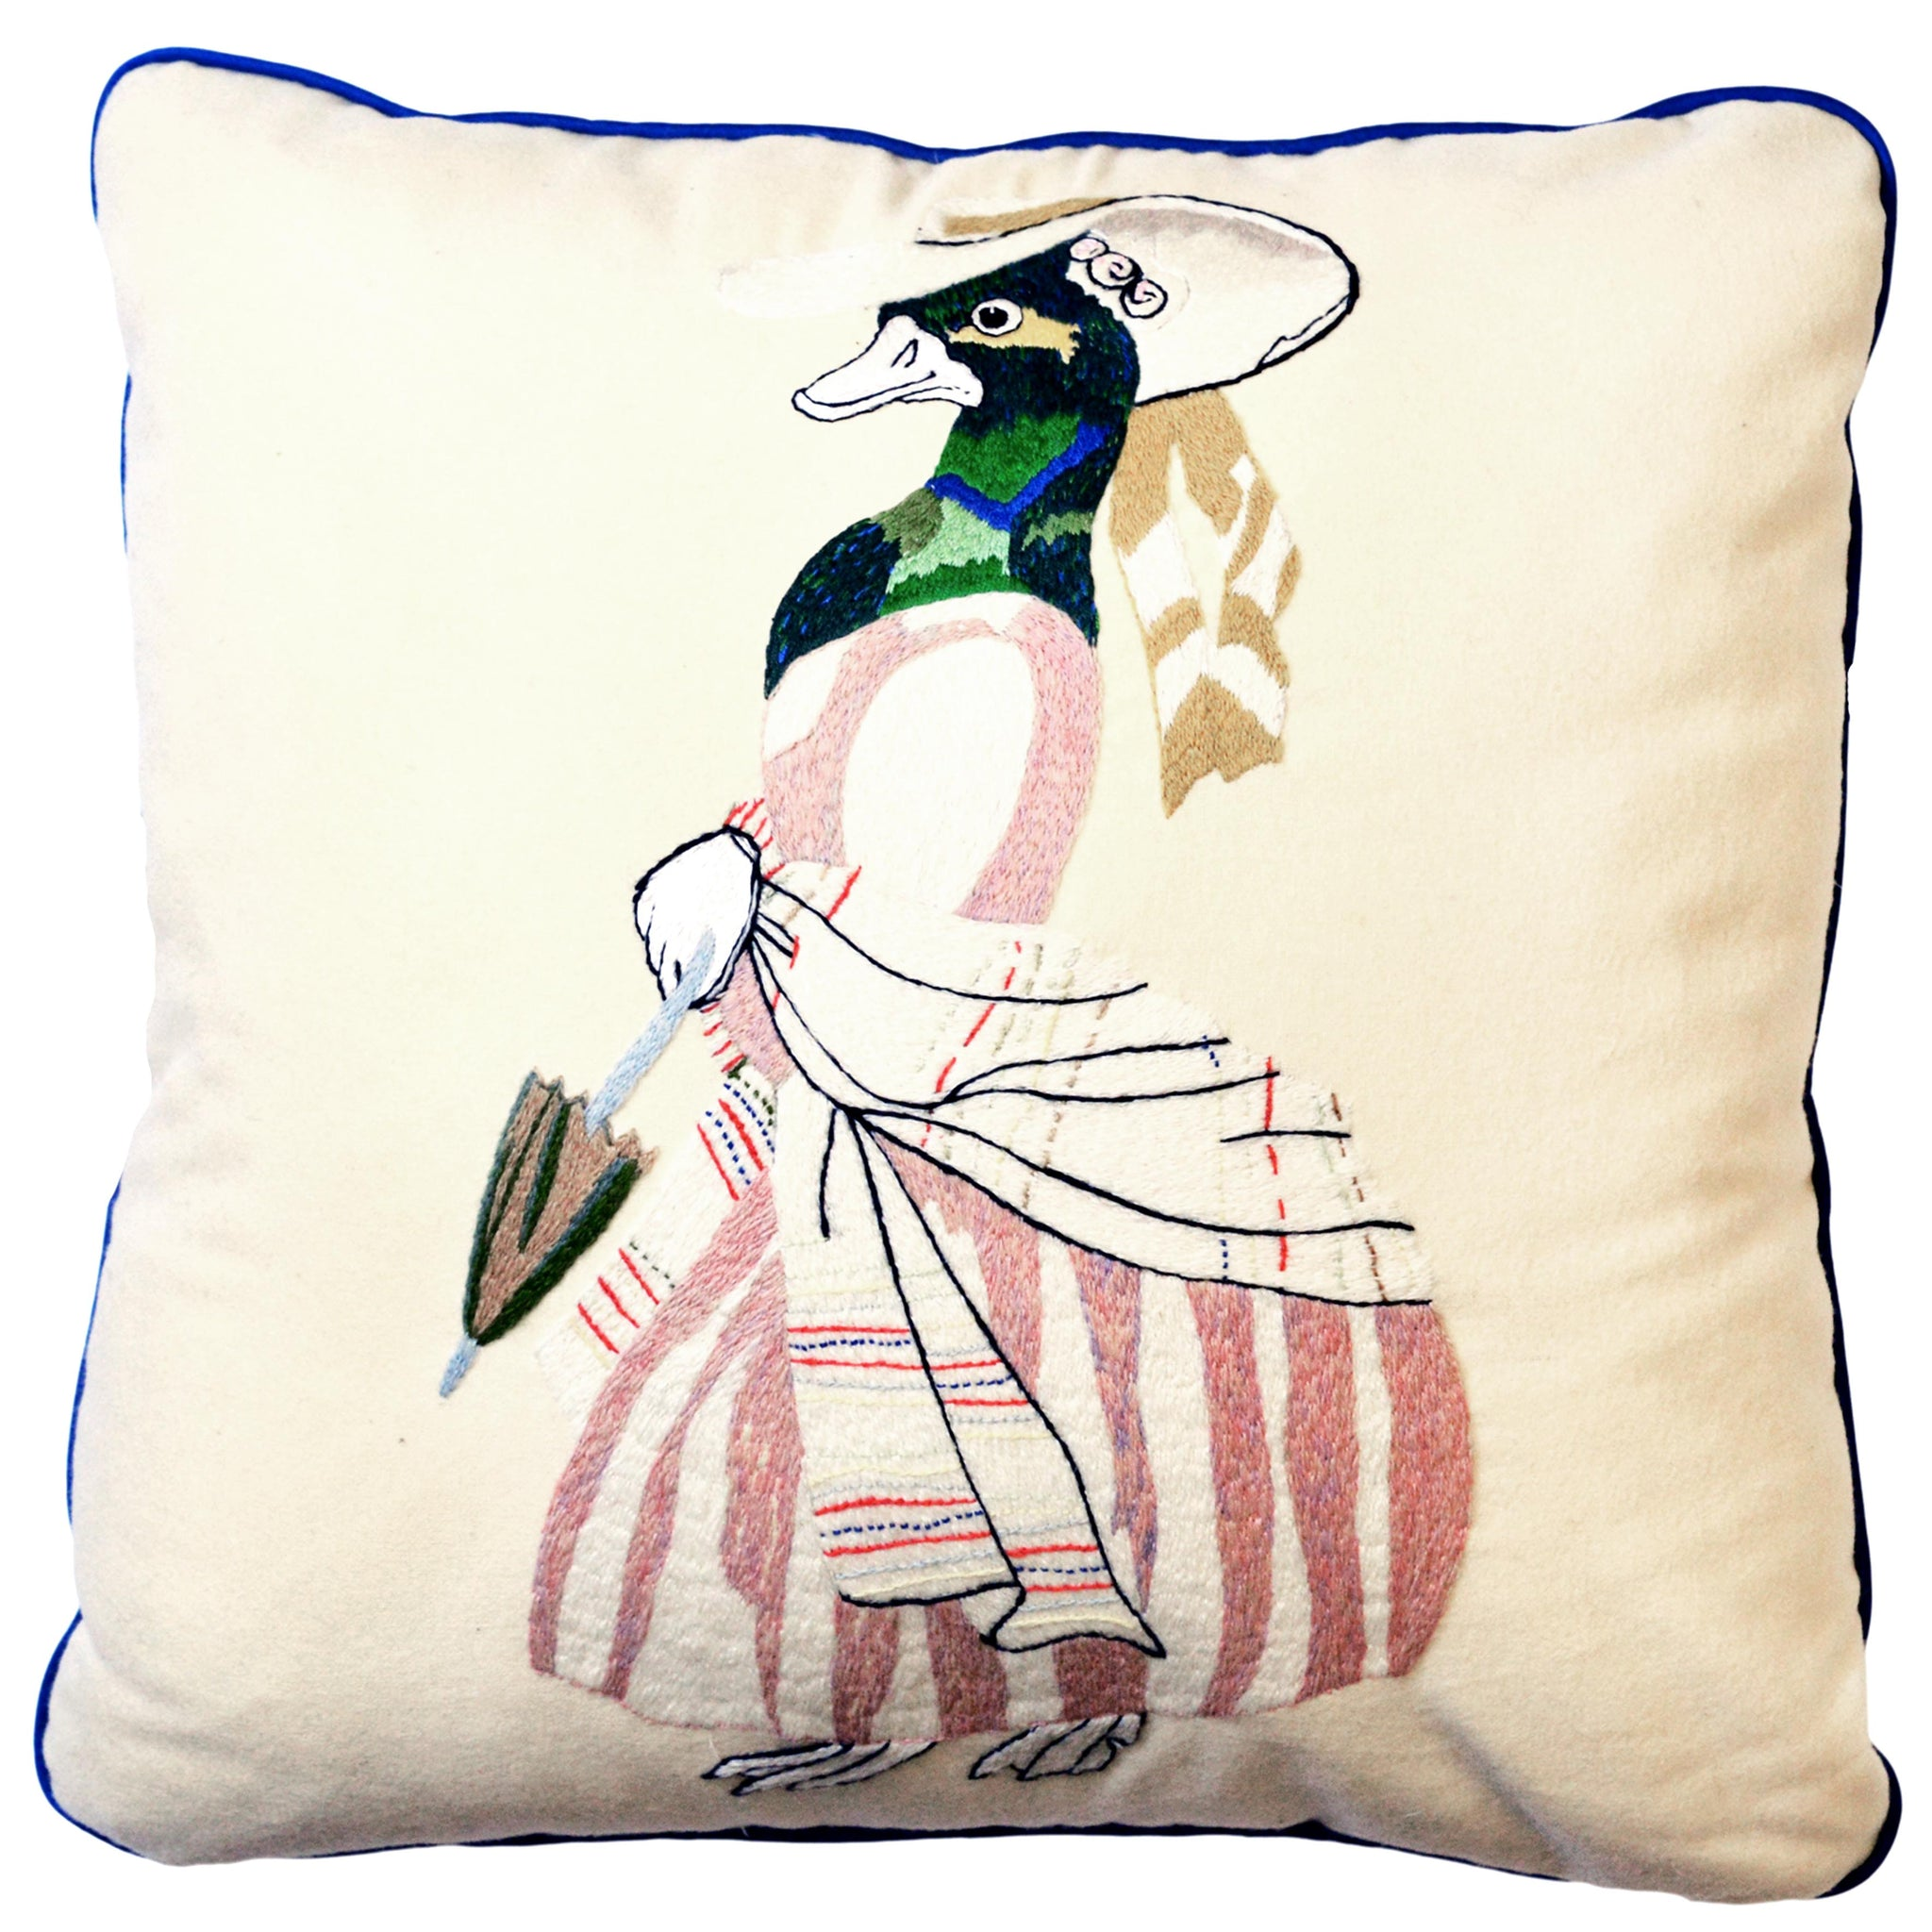 Animaux Hand-Embroidered Duck Wool Cream Green Pink Cushion Fine Cell Work Handmade in Prison